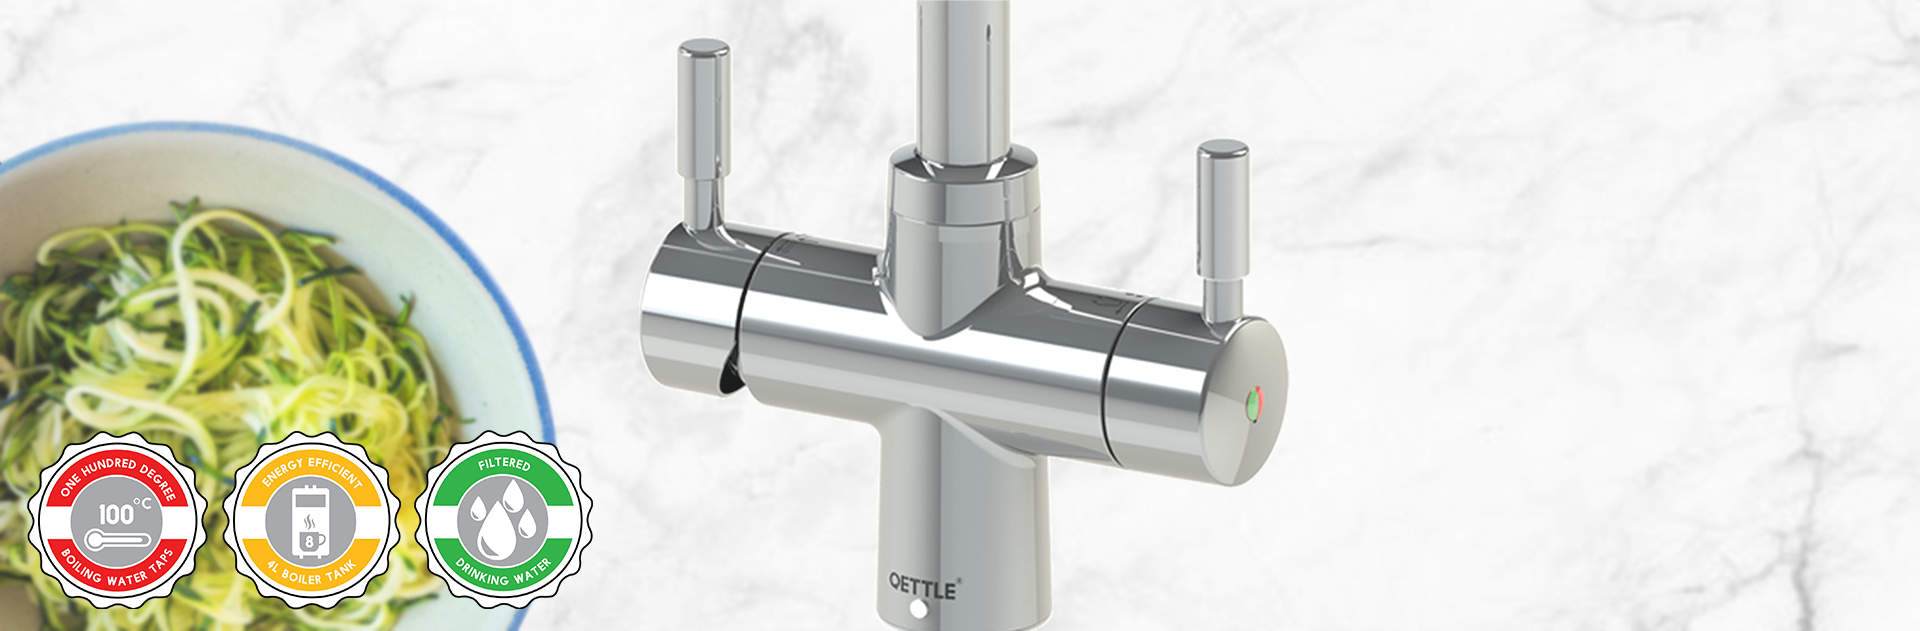 Qettle 4-in-1 Hot, Cold, Filtered Cold & Filtered 100˚C Boiling Water Tap